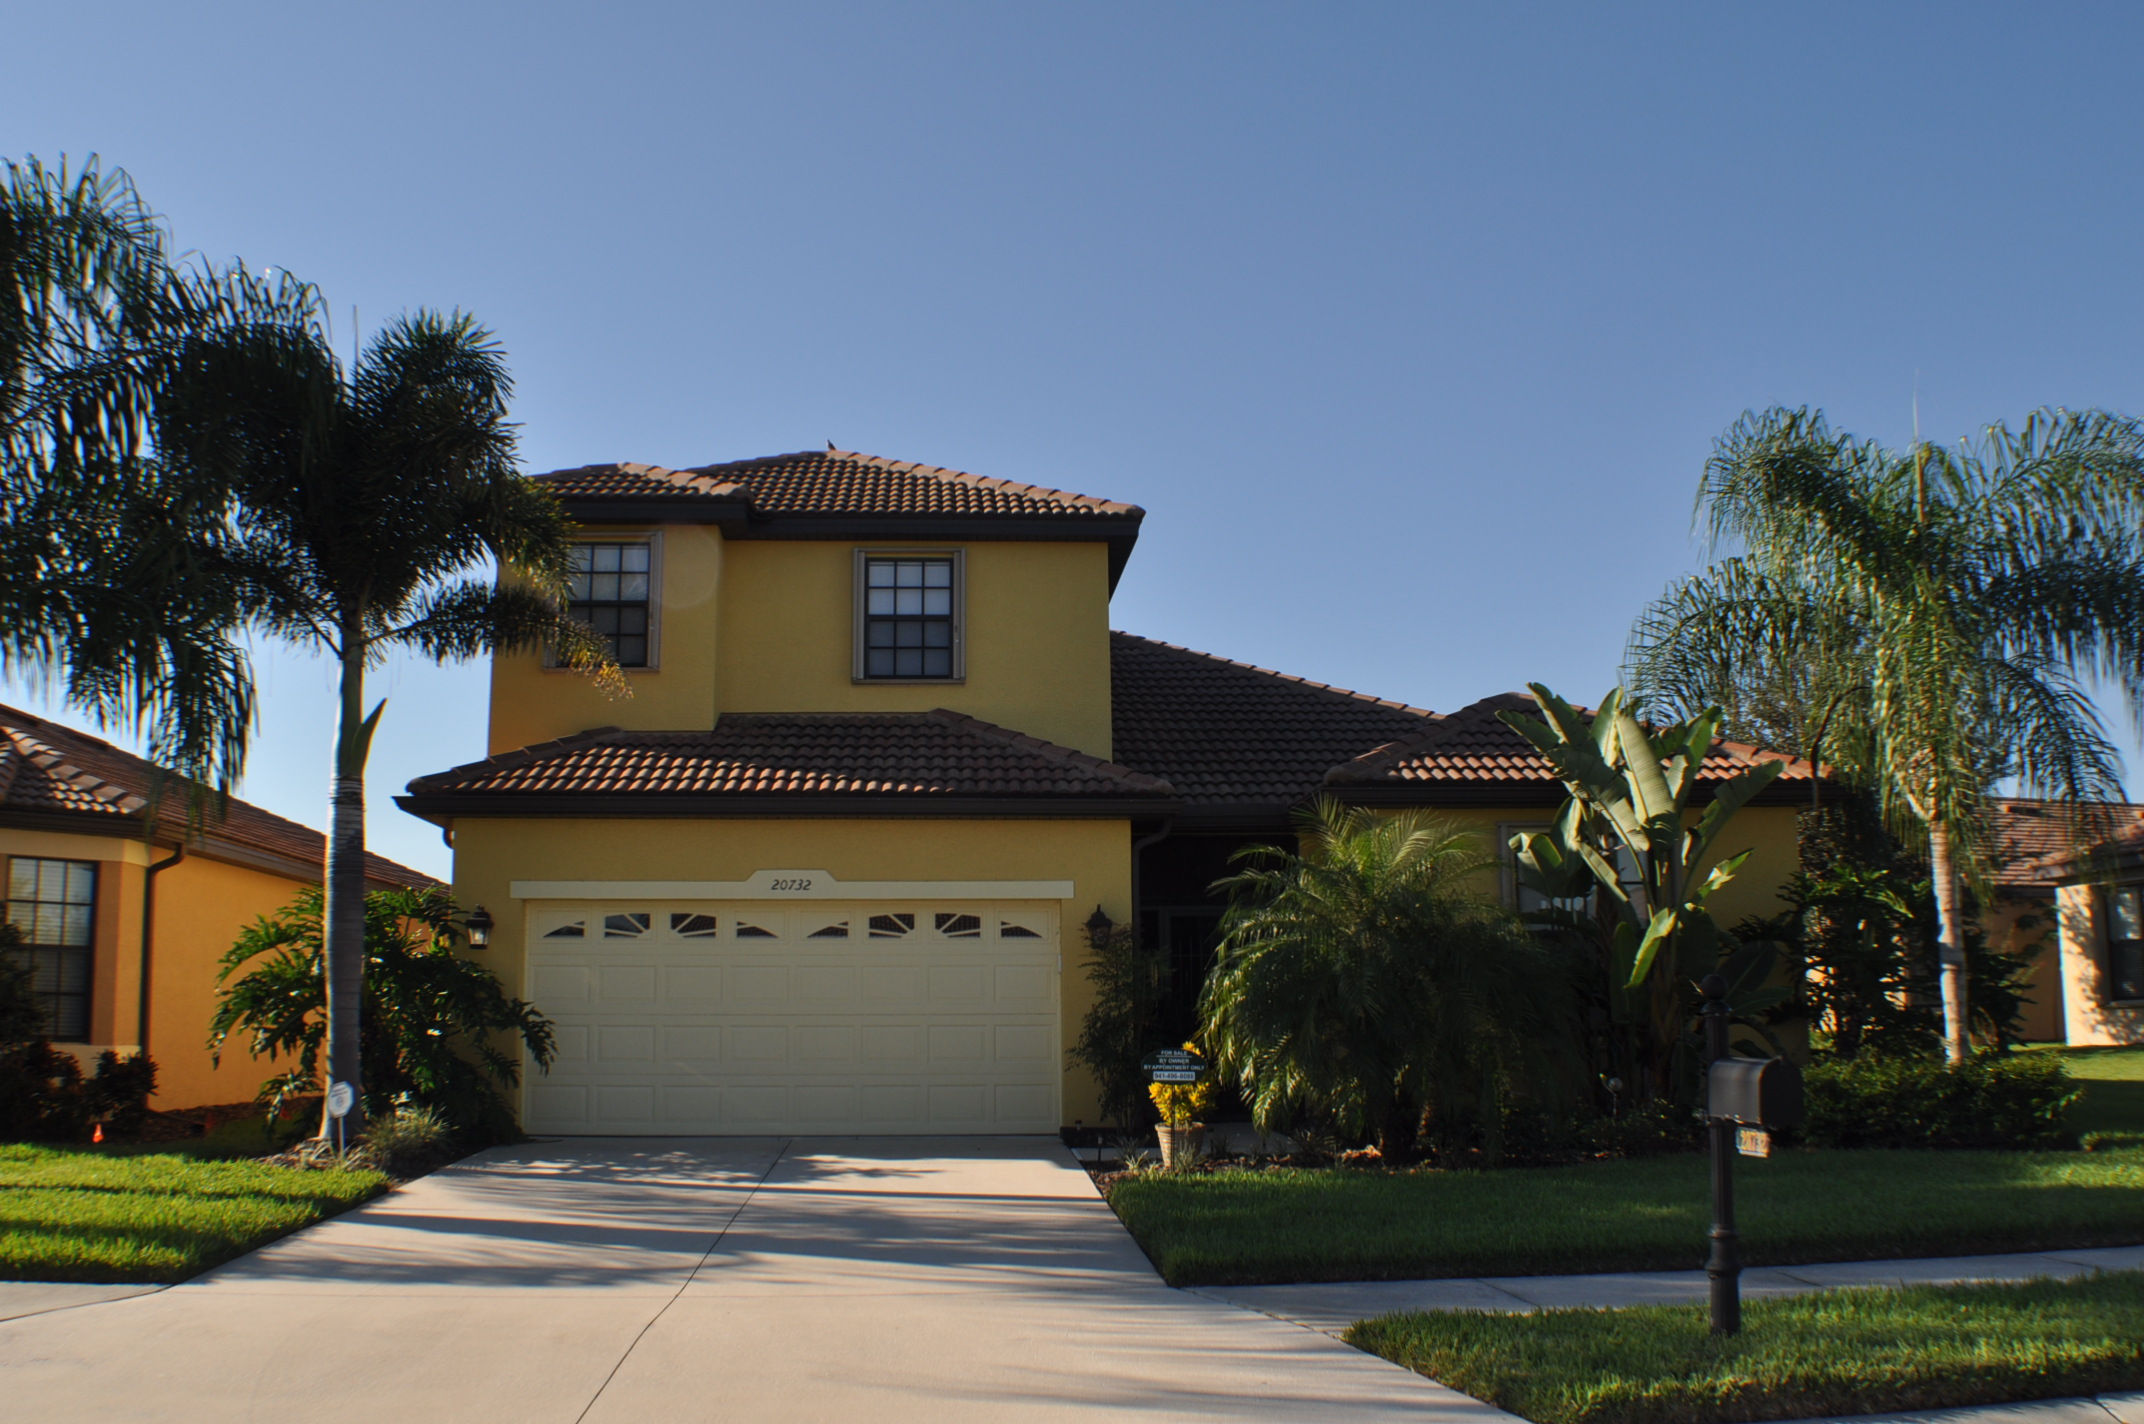 Home Painter Venice  Florida  Choose an inspiring color for your exterior   Find Inspiration for Your Exterior Paint Scheme in Venice  Florida  . Exterior Home Color Schemes Florida. Home Design Ideas